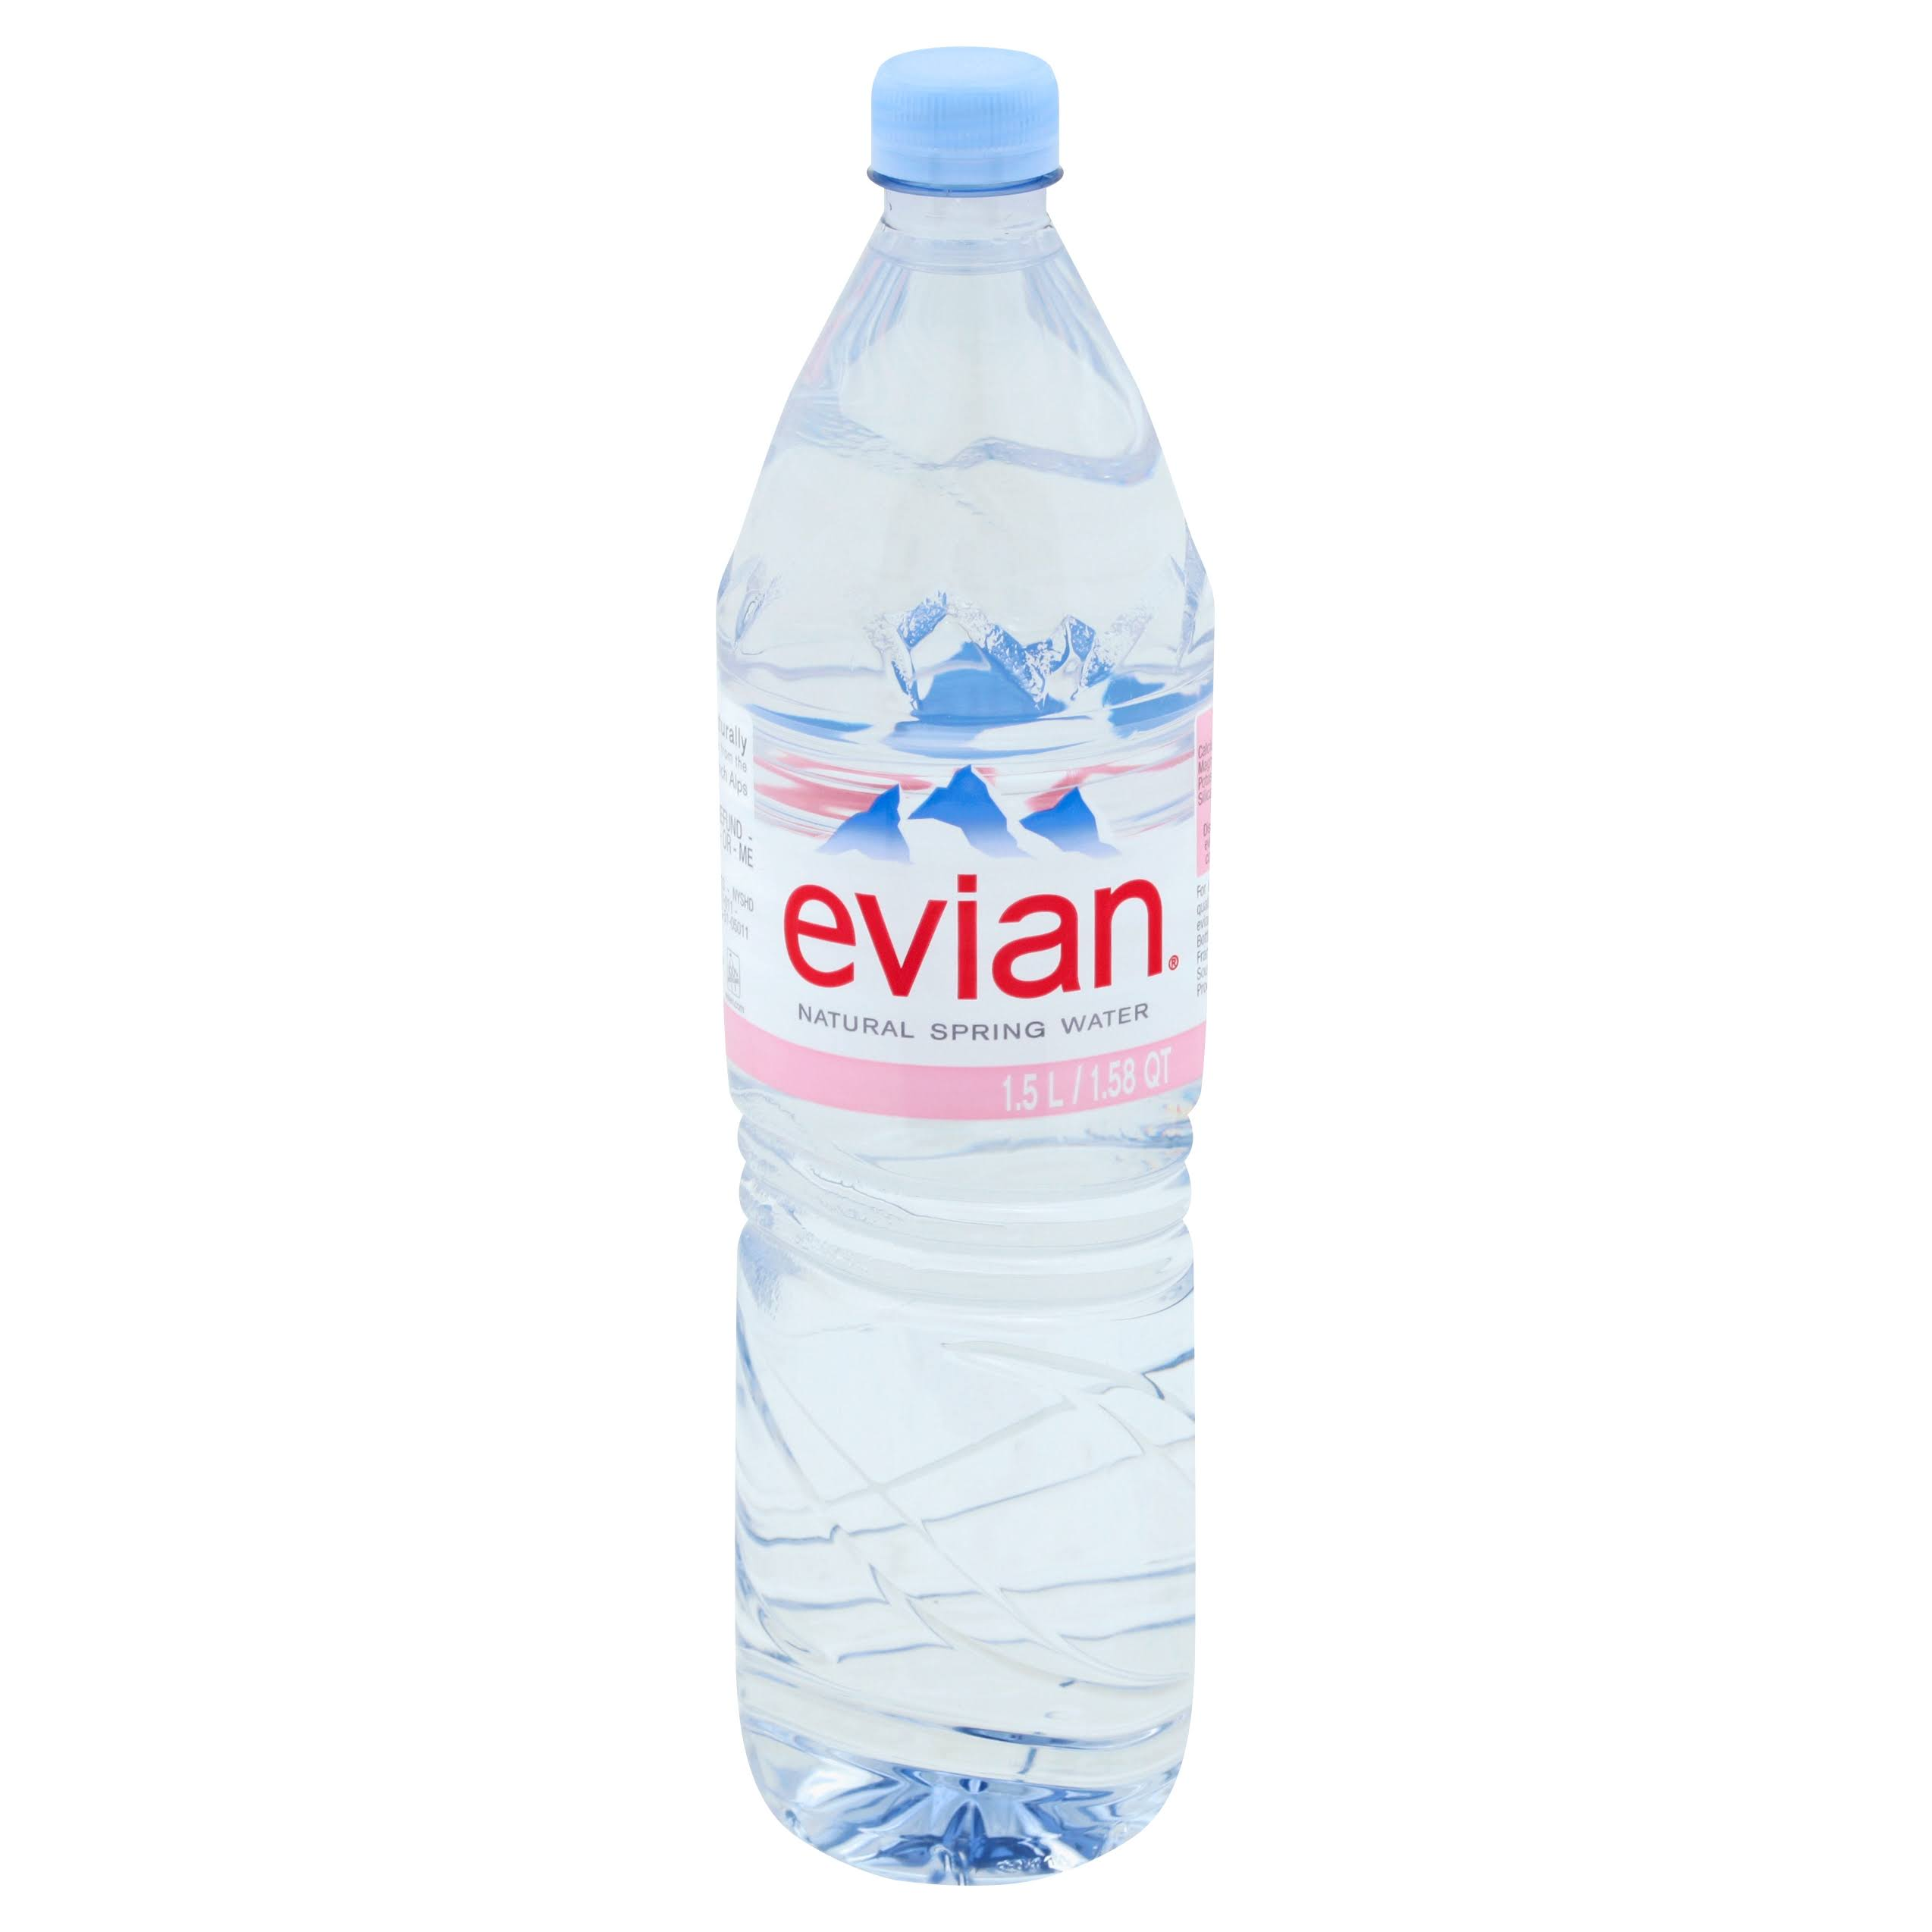 Evian Water, Natural Spring - 1.58 qt